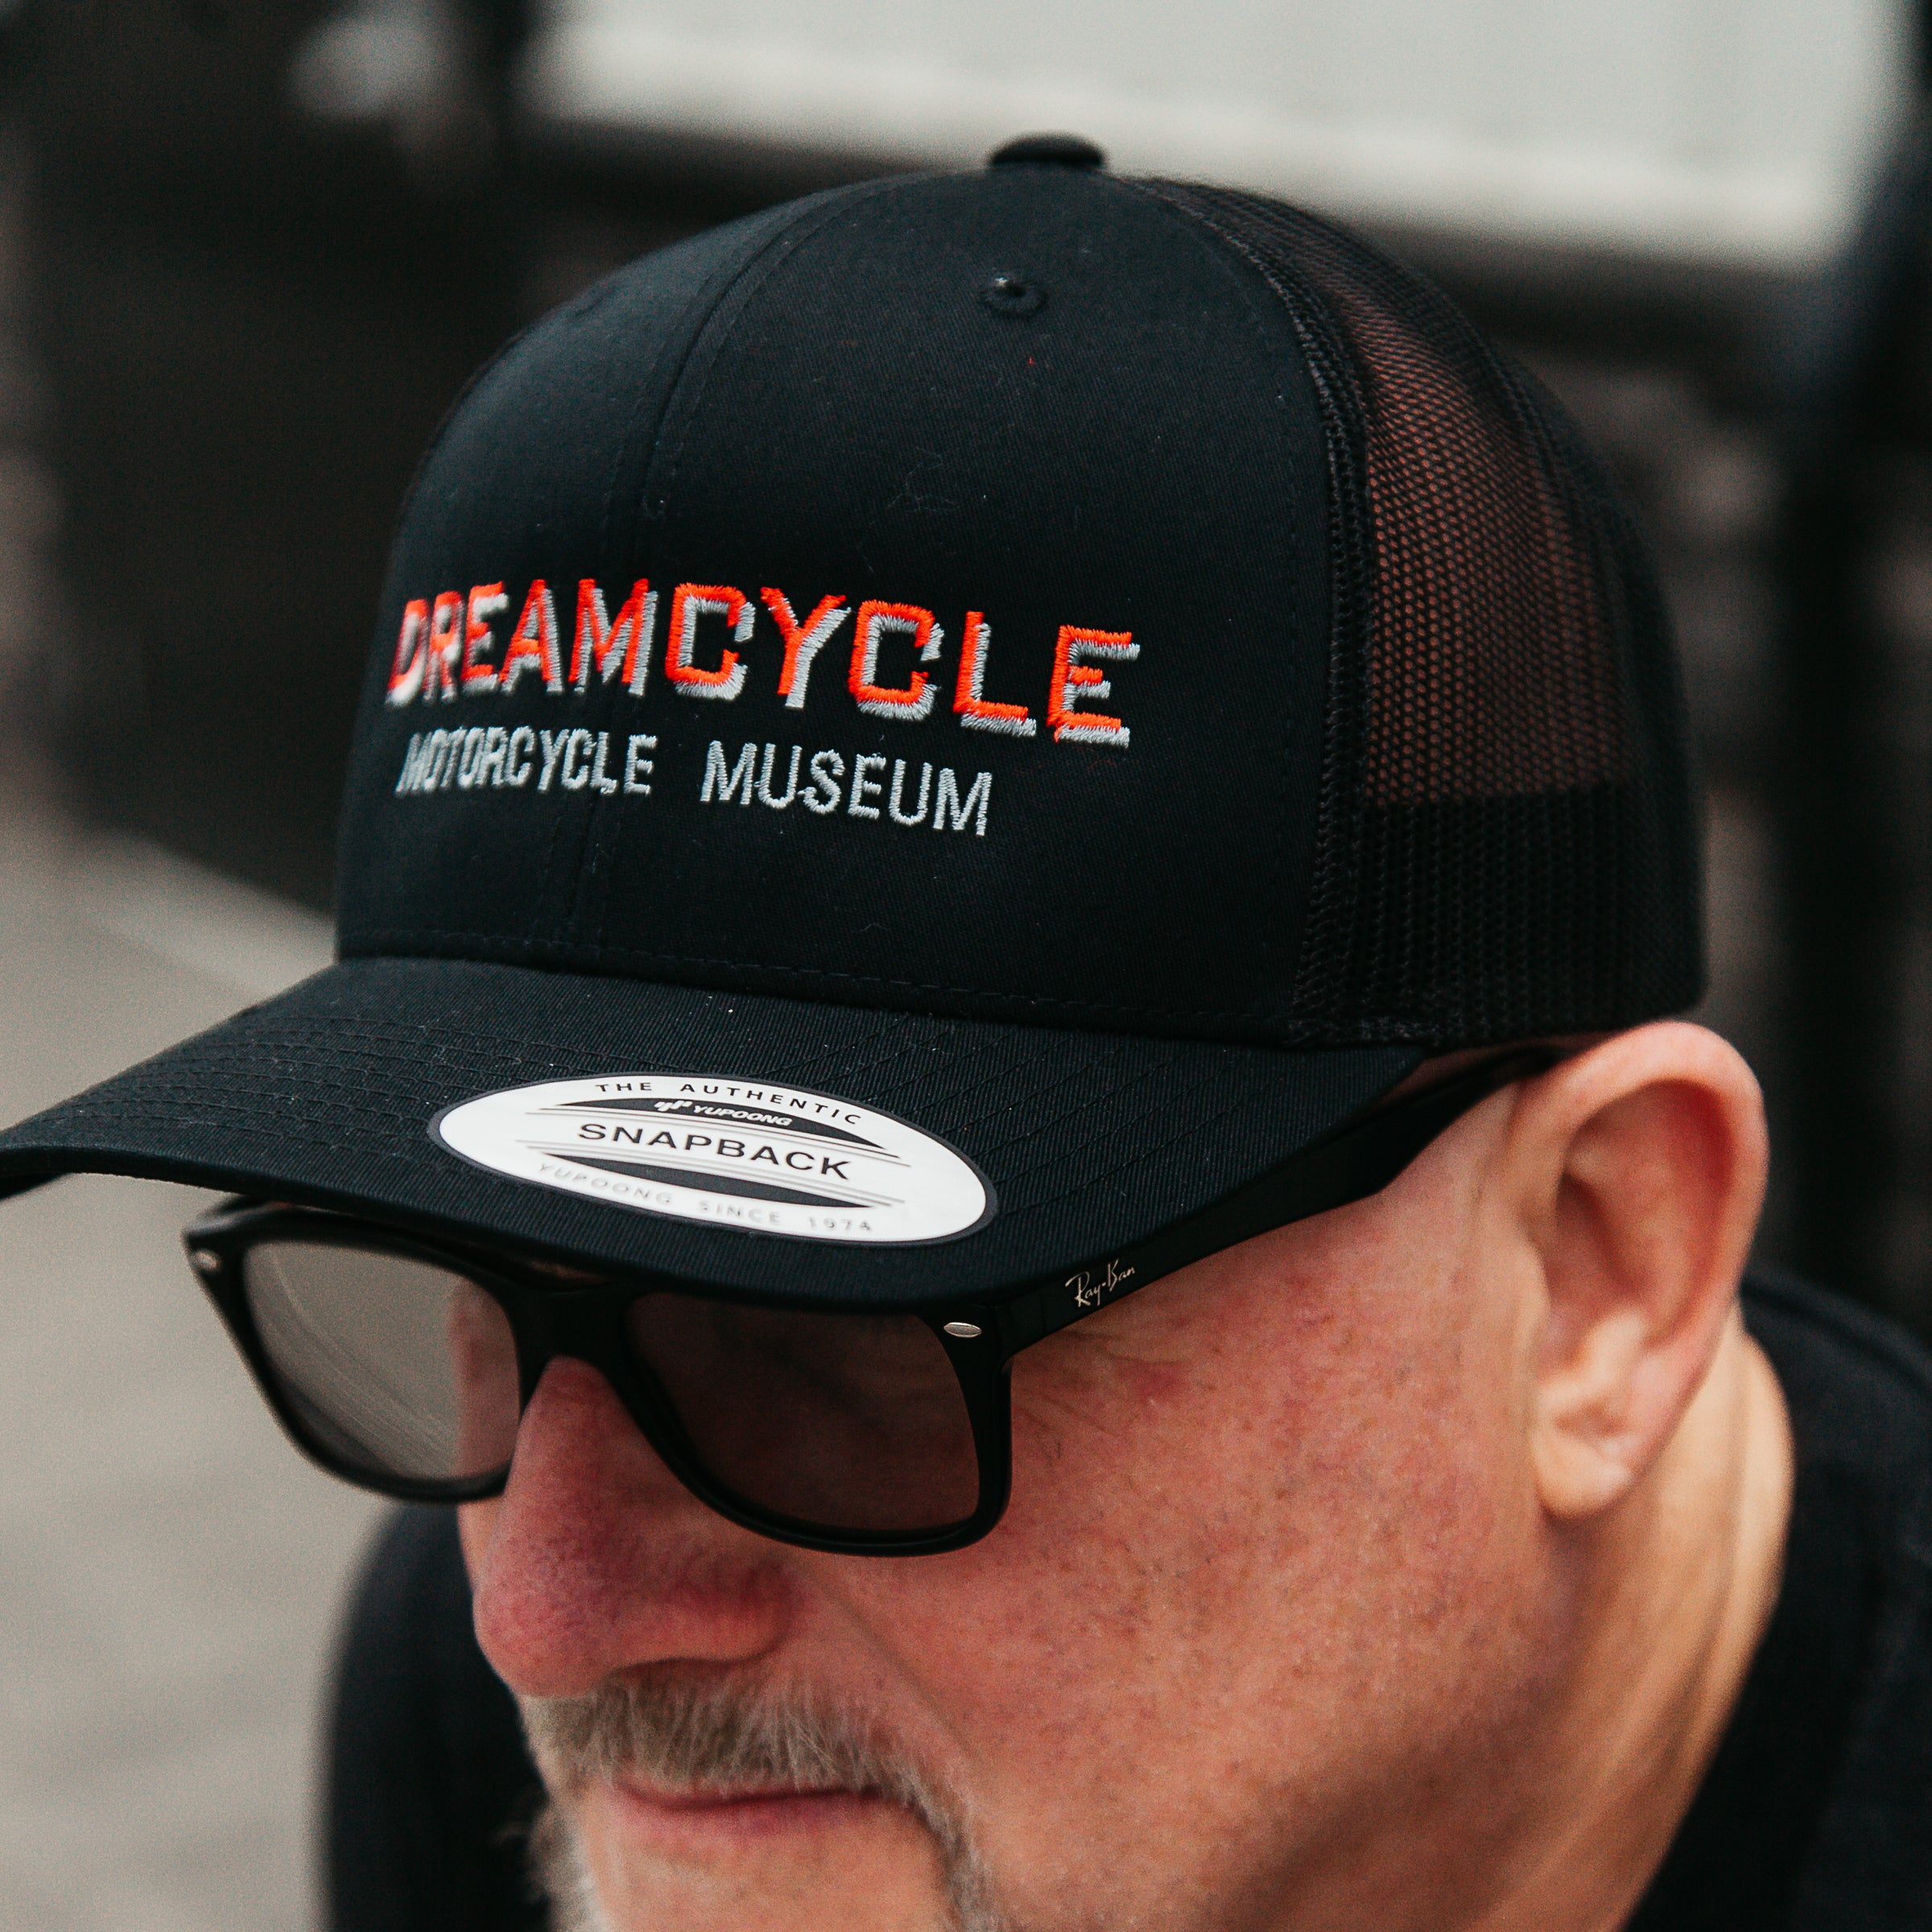 Dreamcycle Motorcycle Museum | Man wearing dreamcycle trucker hat in lifestyle setting.